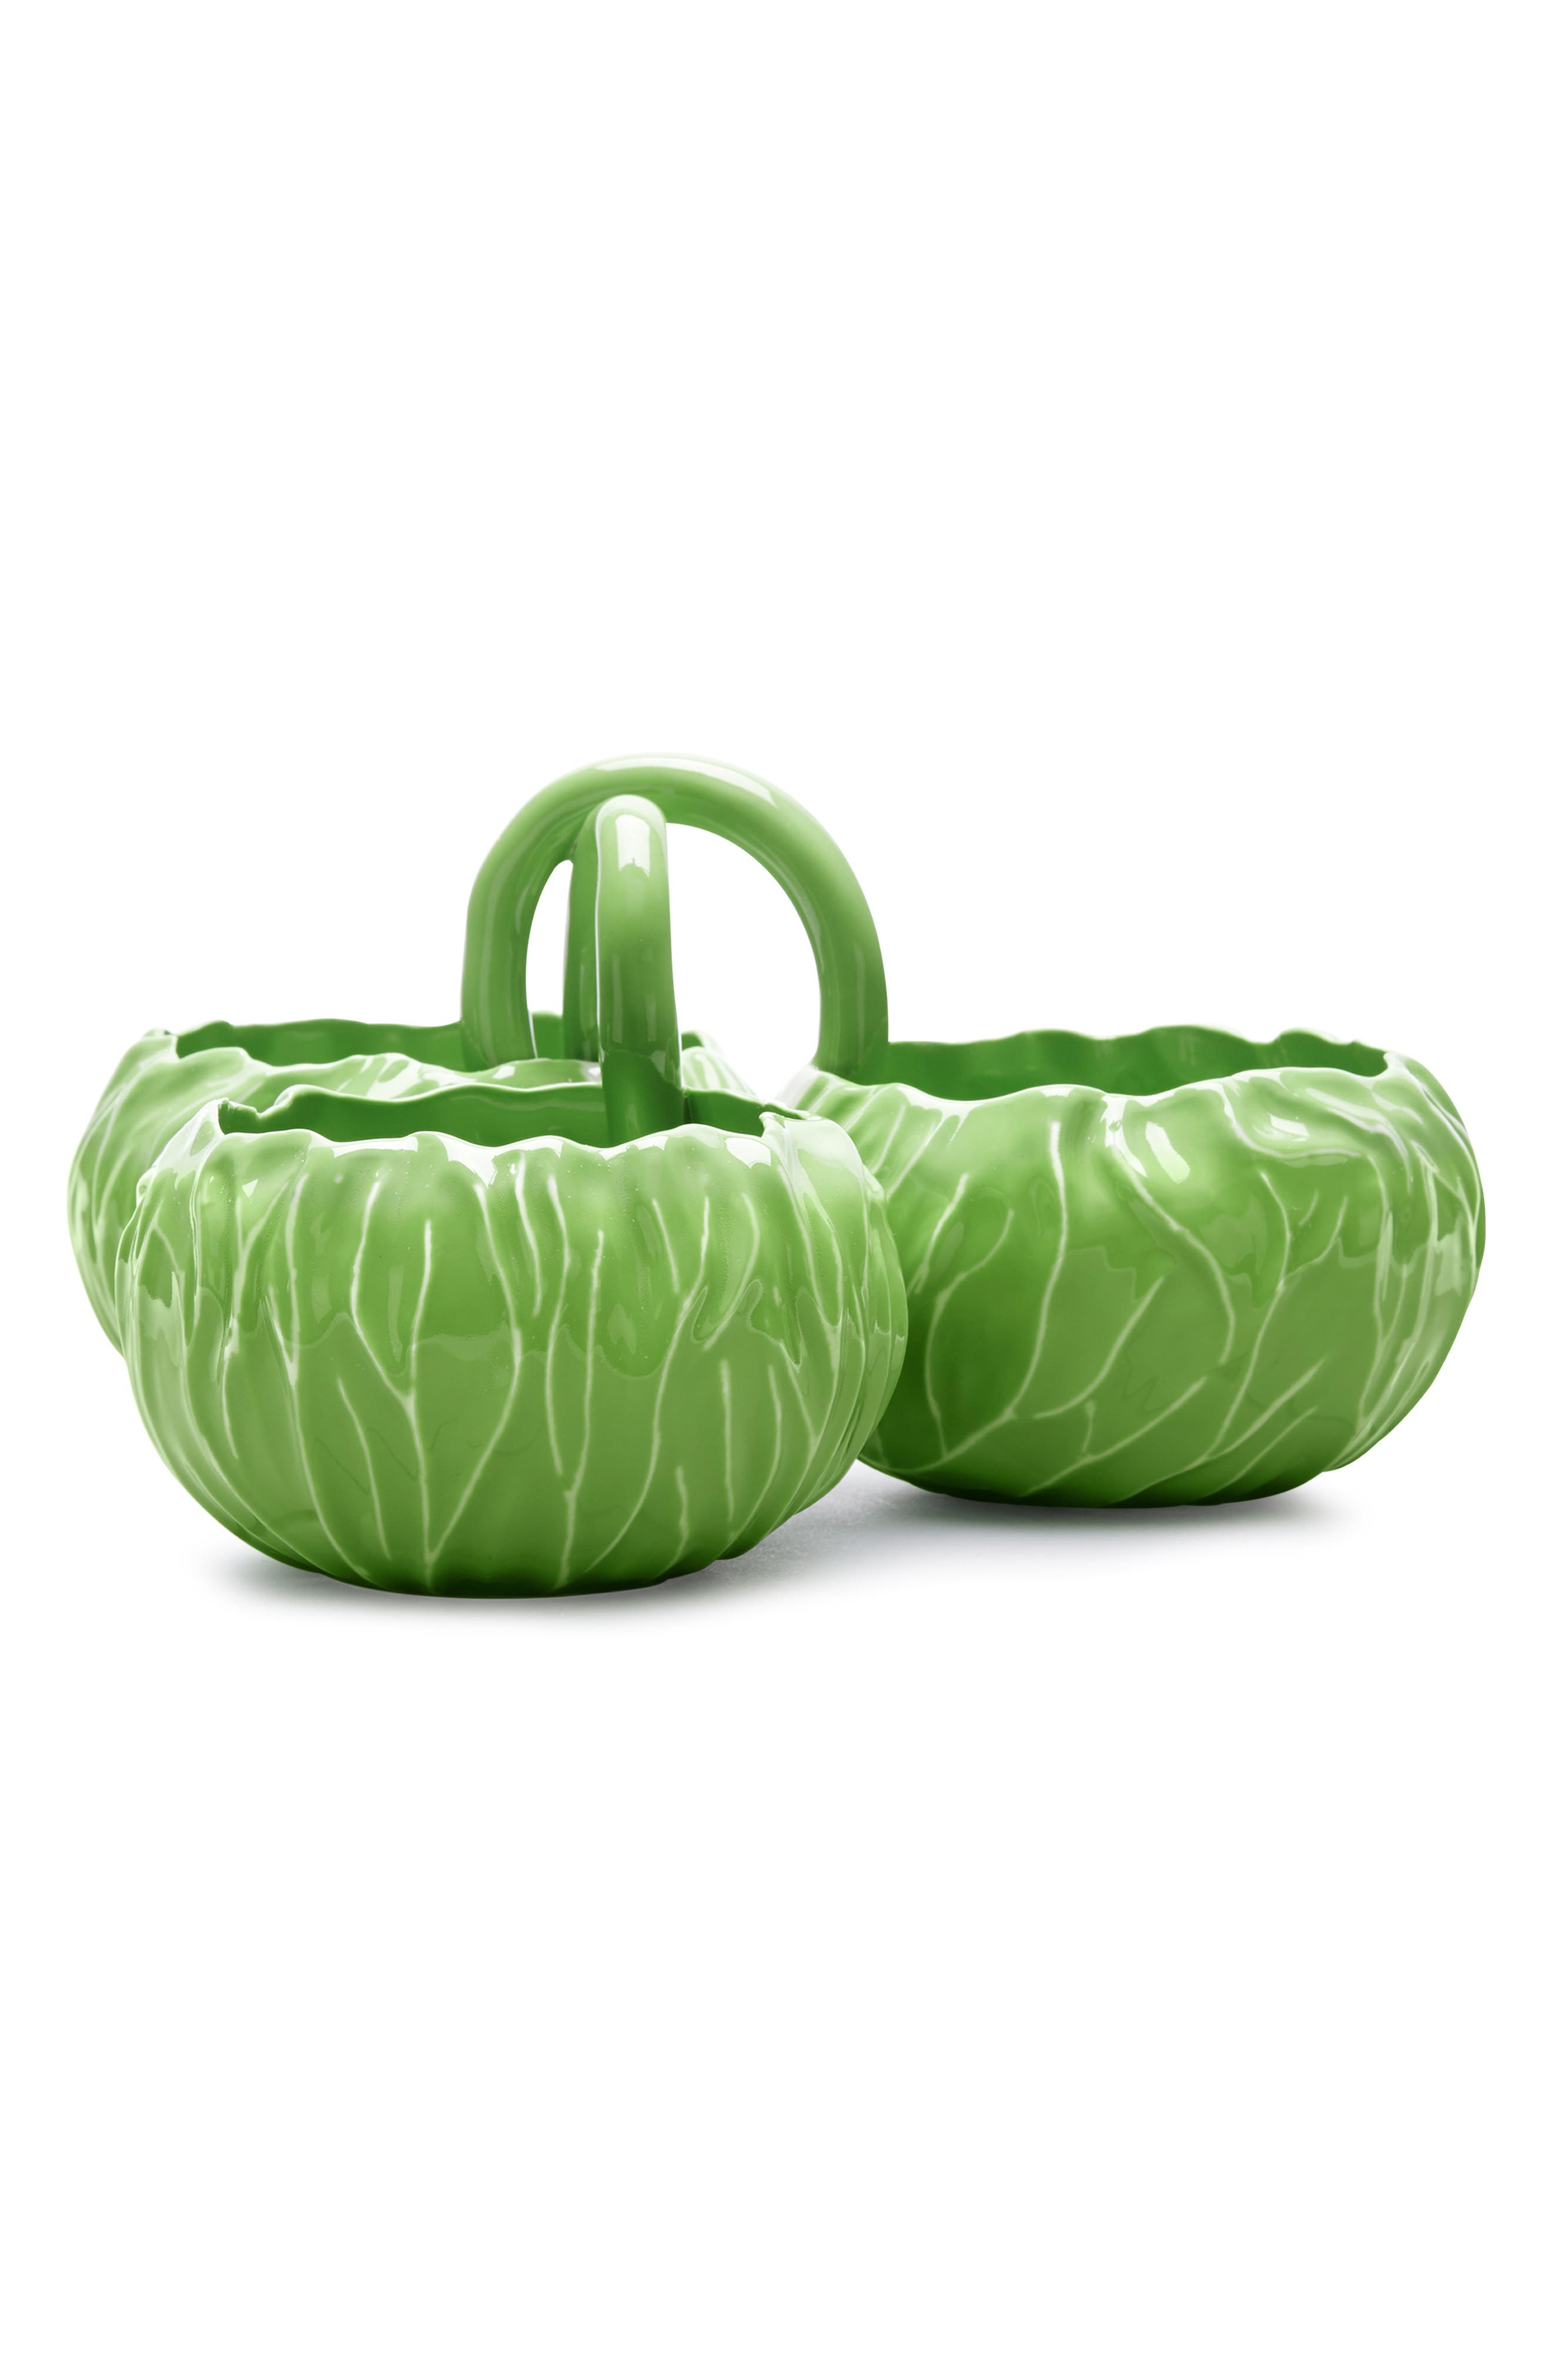 TORY BURCH, Lettuce Ware Hors d'Oeuvres Bowl, Main thumbnail 1, color, 307